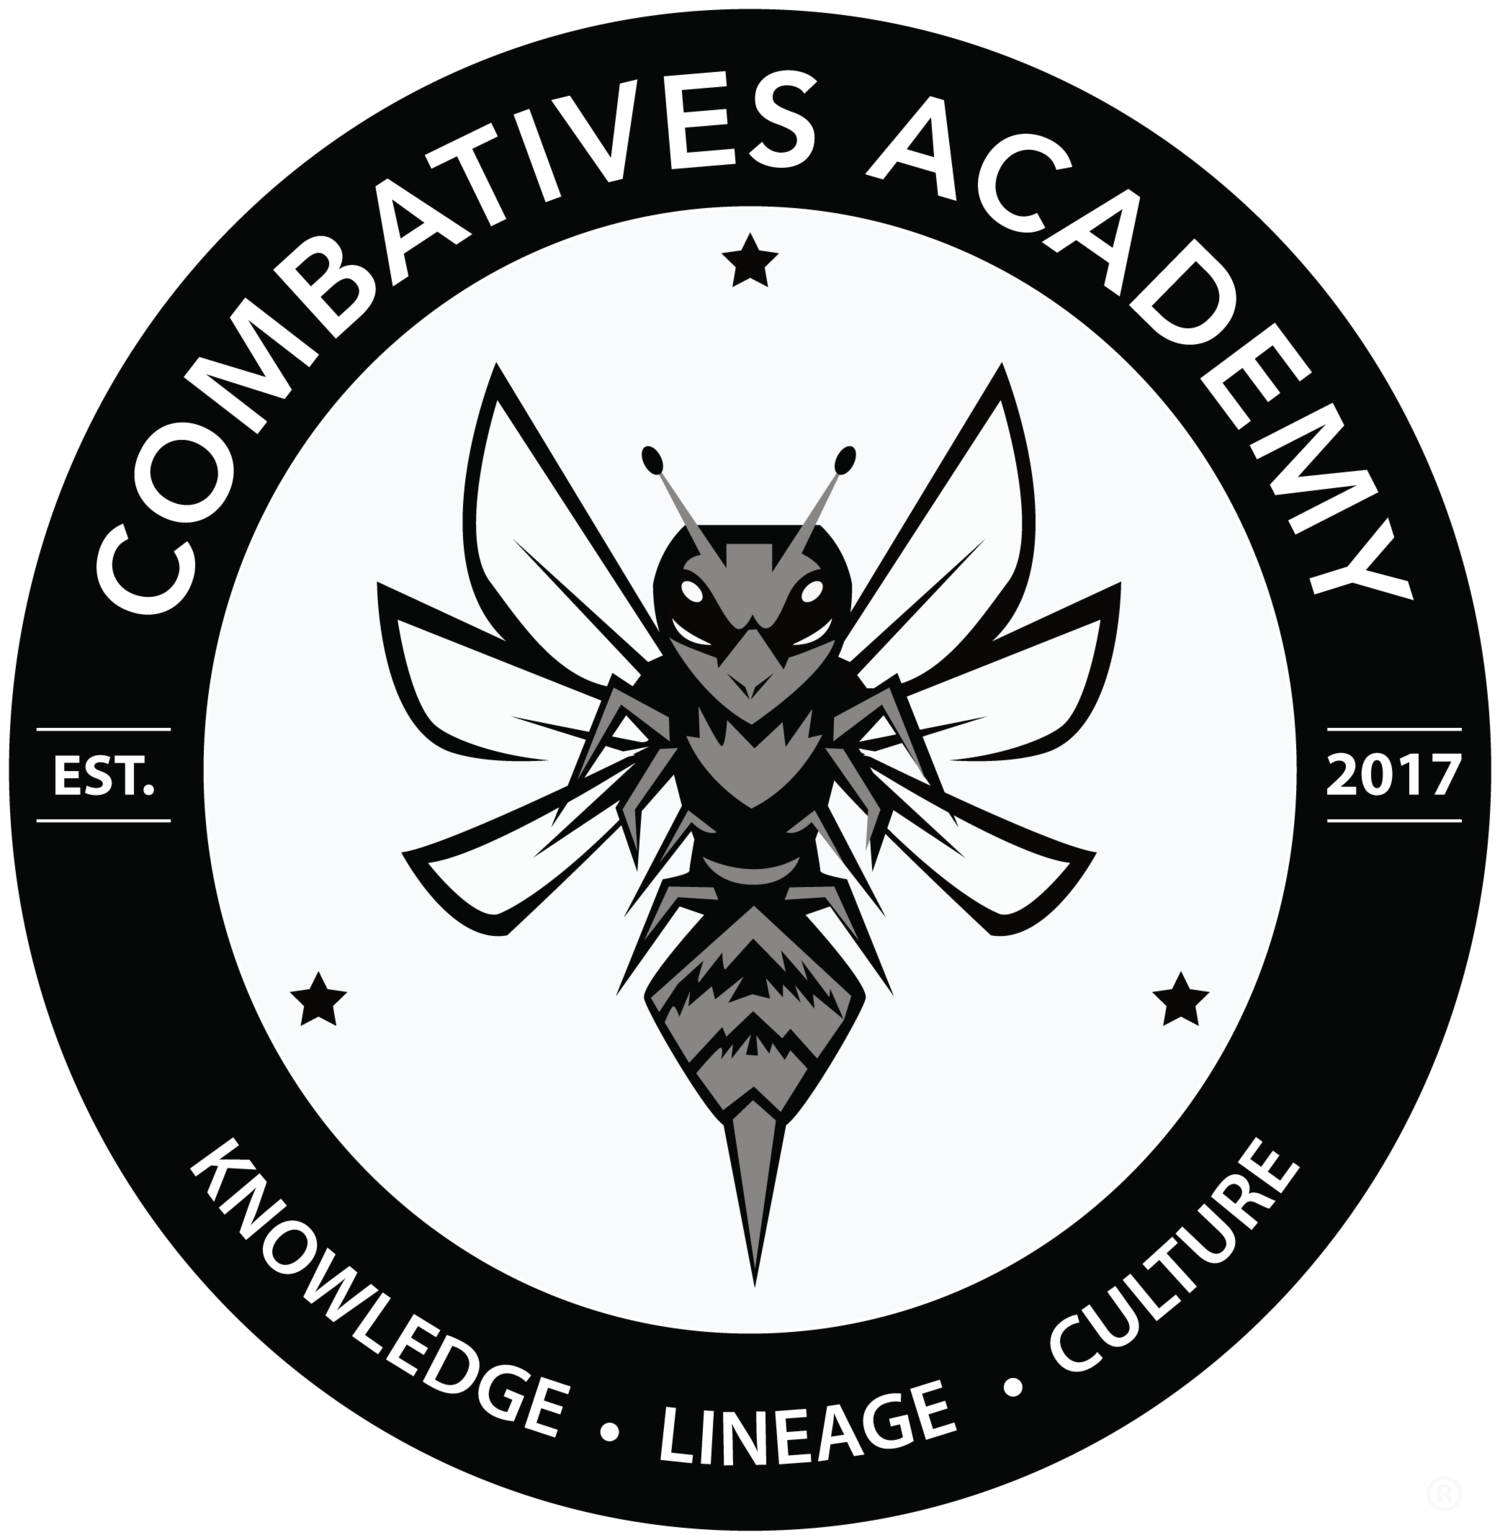 Combatives Academy : Martial Arts Los Angeles : Self Defense : Fitness : Training : Kickboxing : Jeet Kune Do : Escrima